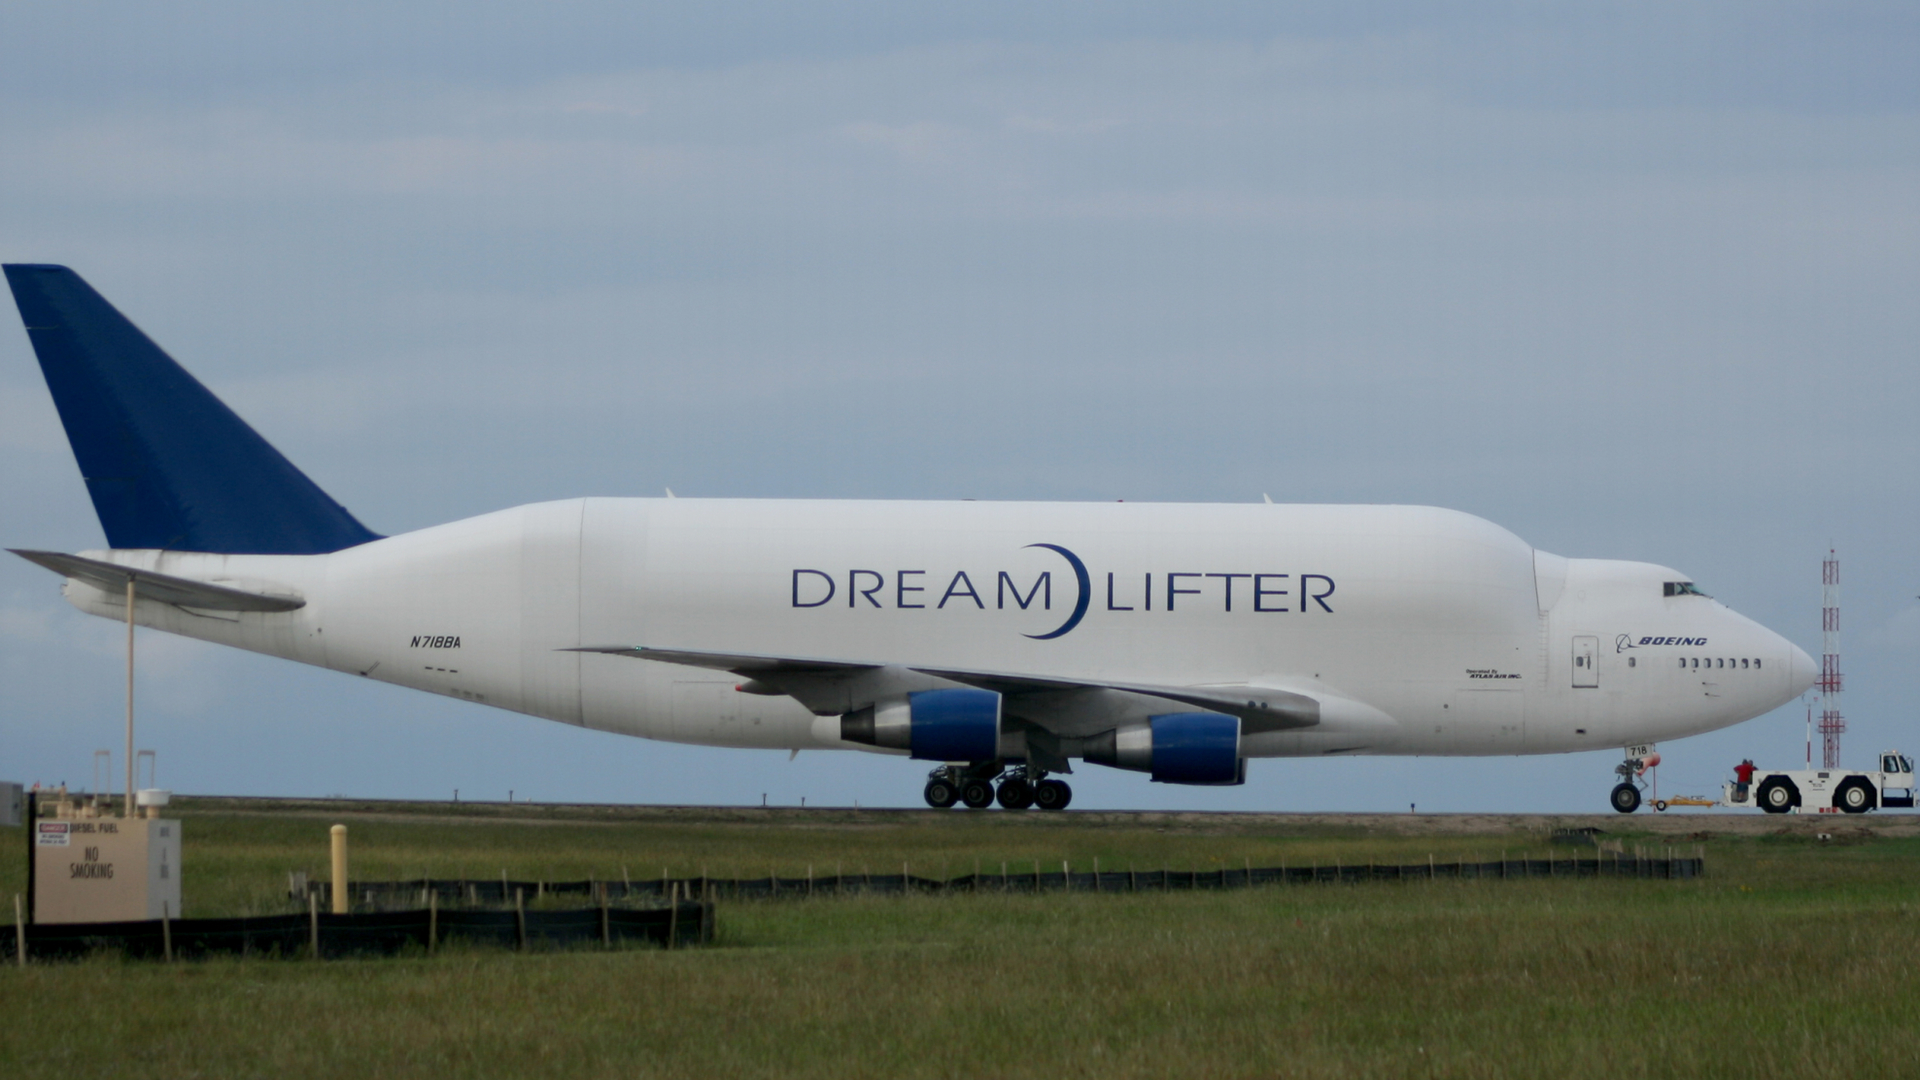 Airplane Wallpaper Iphone X Boeing Dreamlifter Hd Wallpaper Background Image